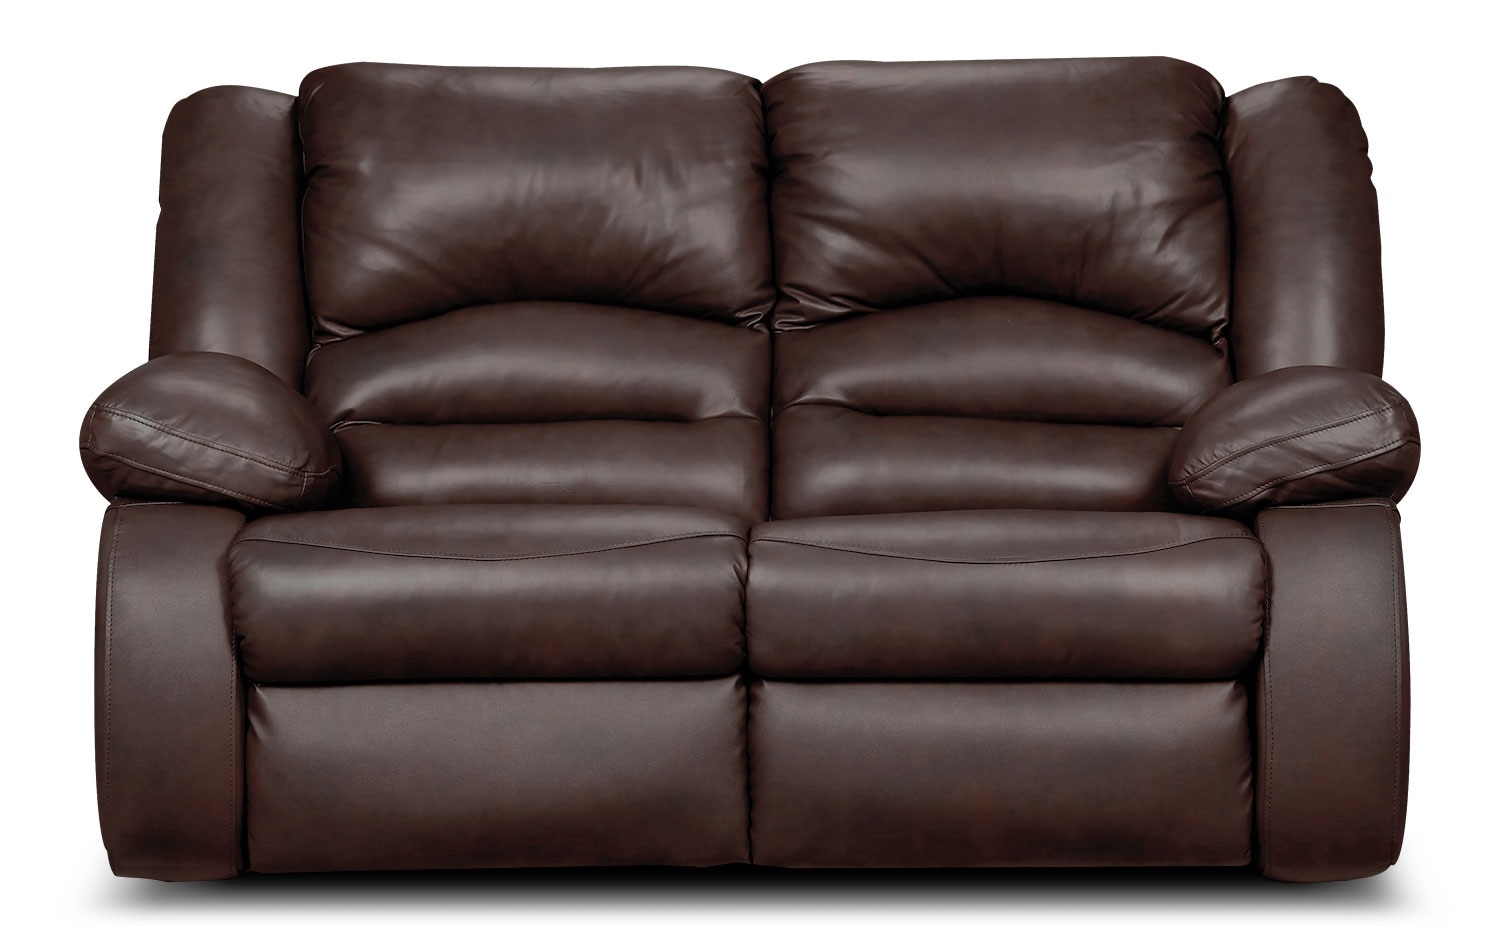 Toreno Brown Genuine Leather Reclining Loveseat